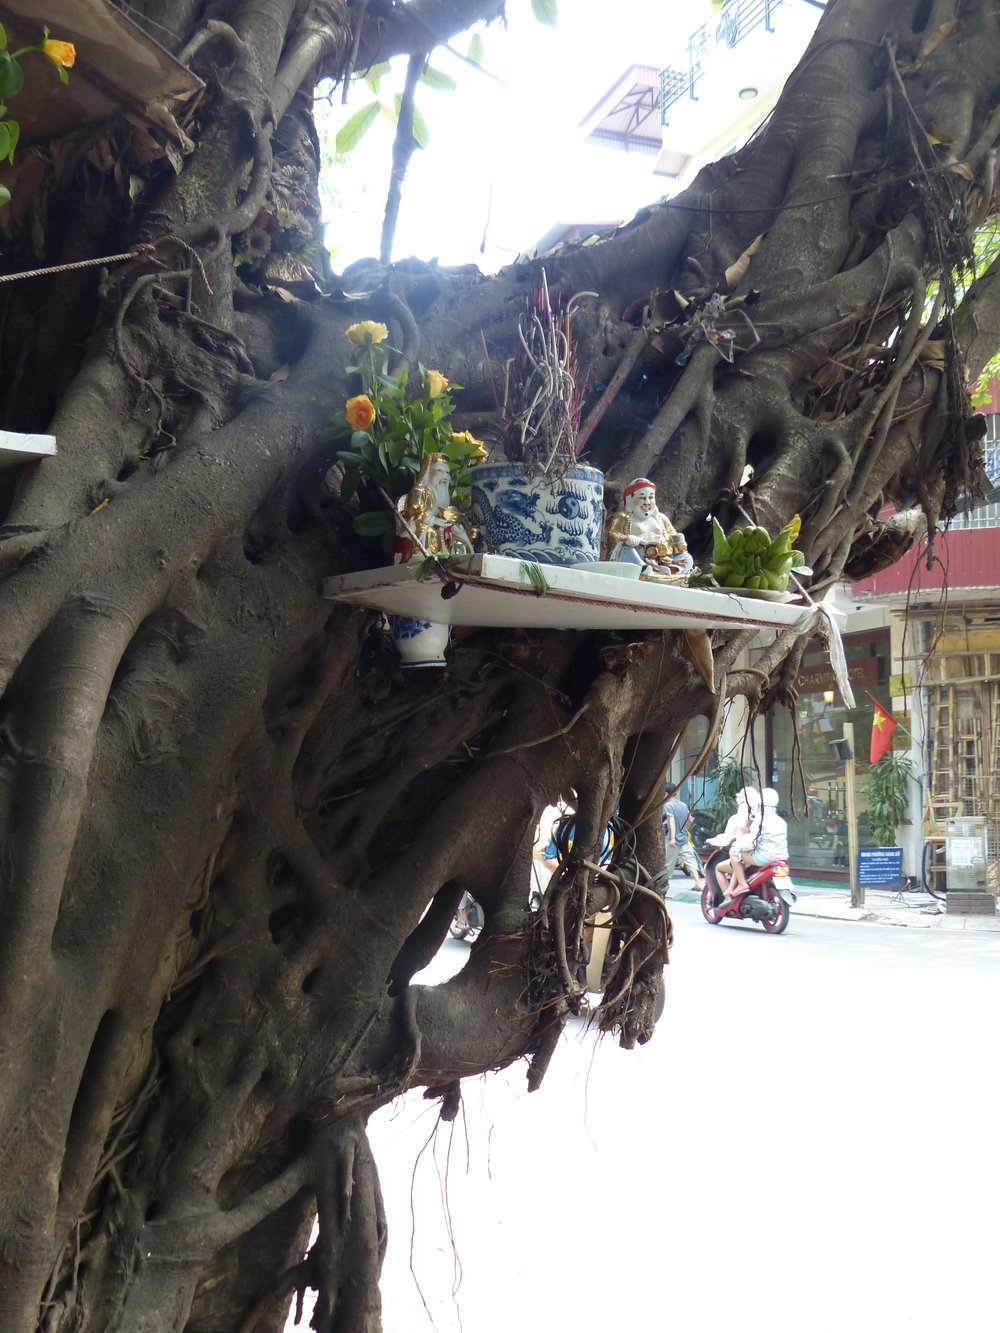 Why is there a shrine in the banyan tree?